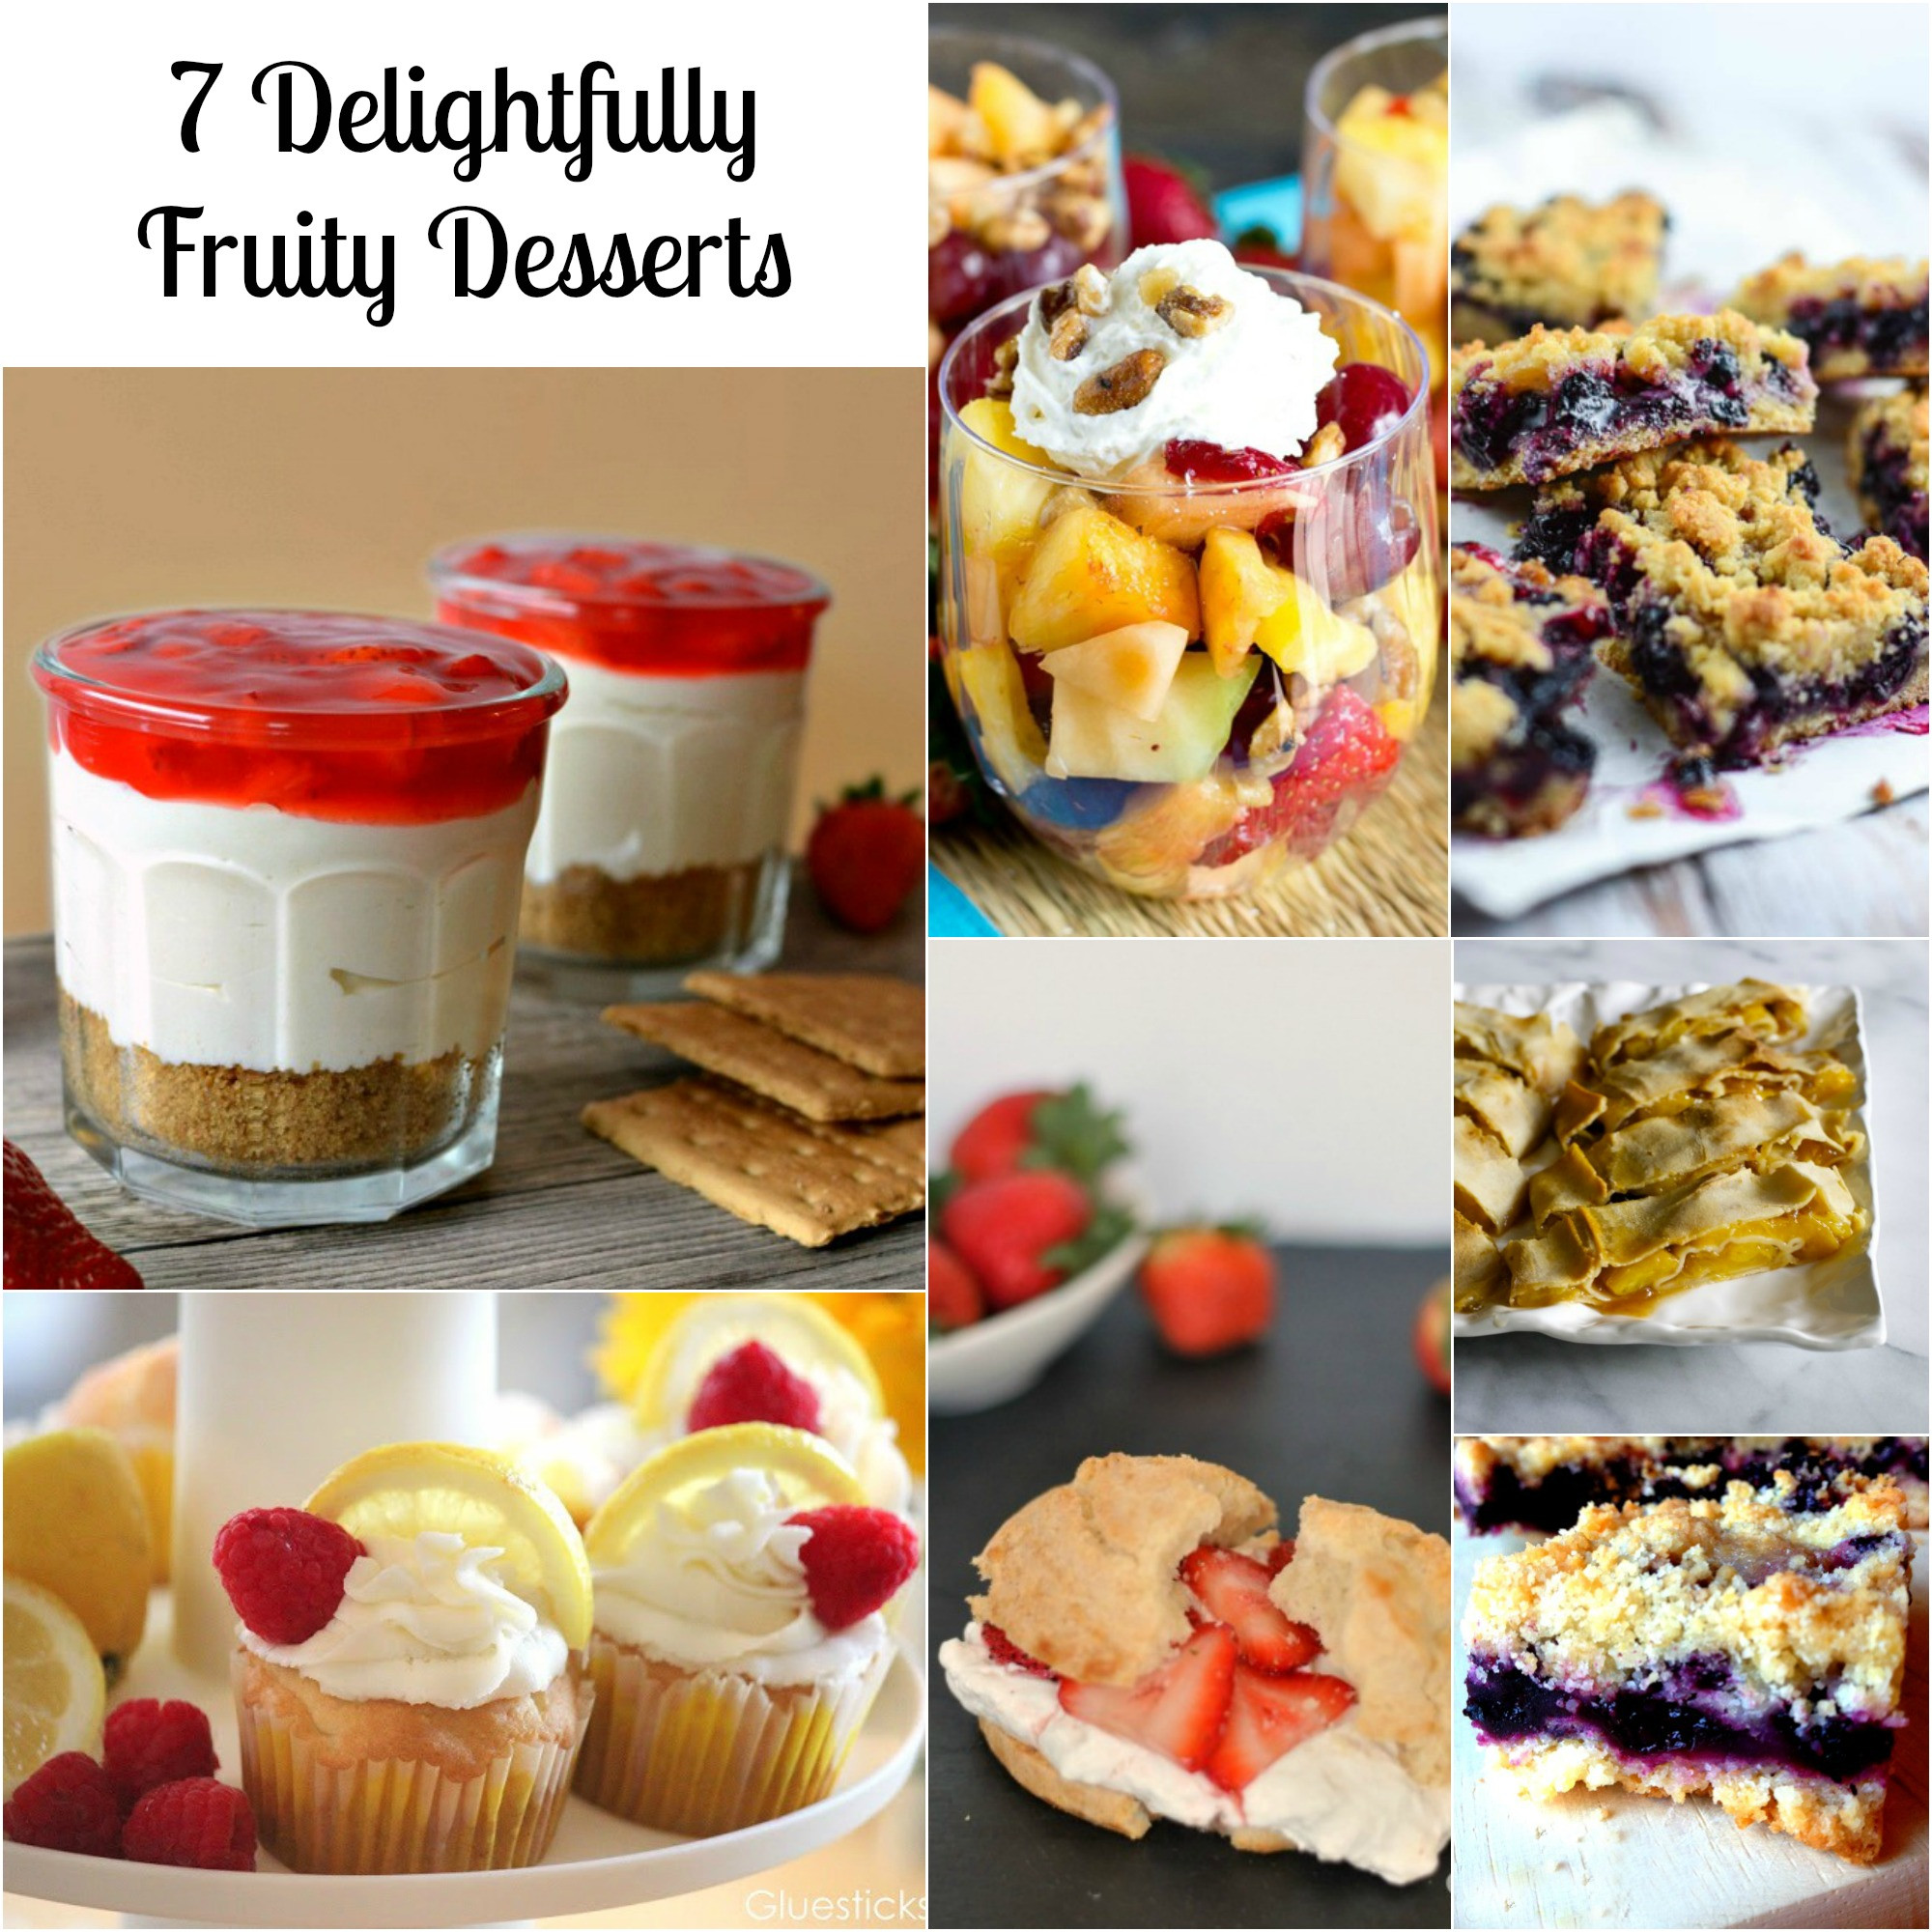 Summer Desserts Recipes  7 Summer Dessert Recipes You Have to Try SoFabFood